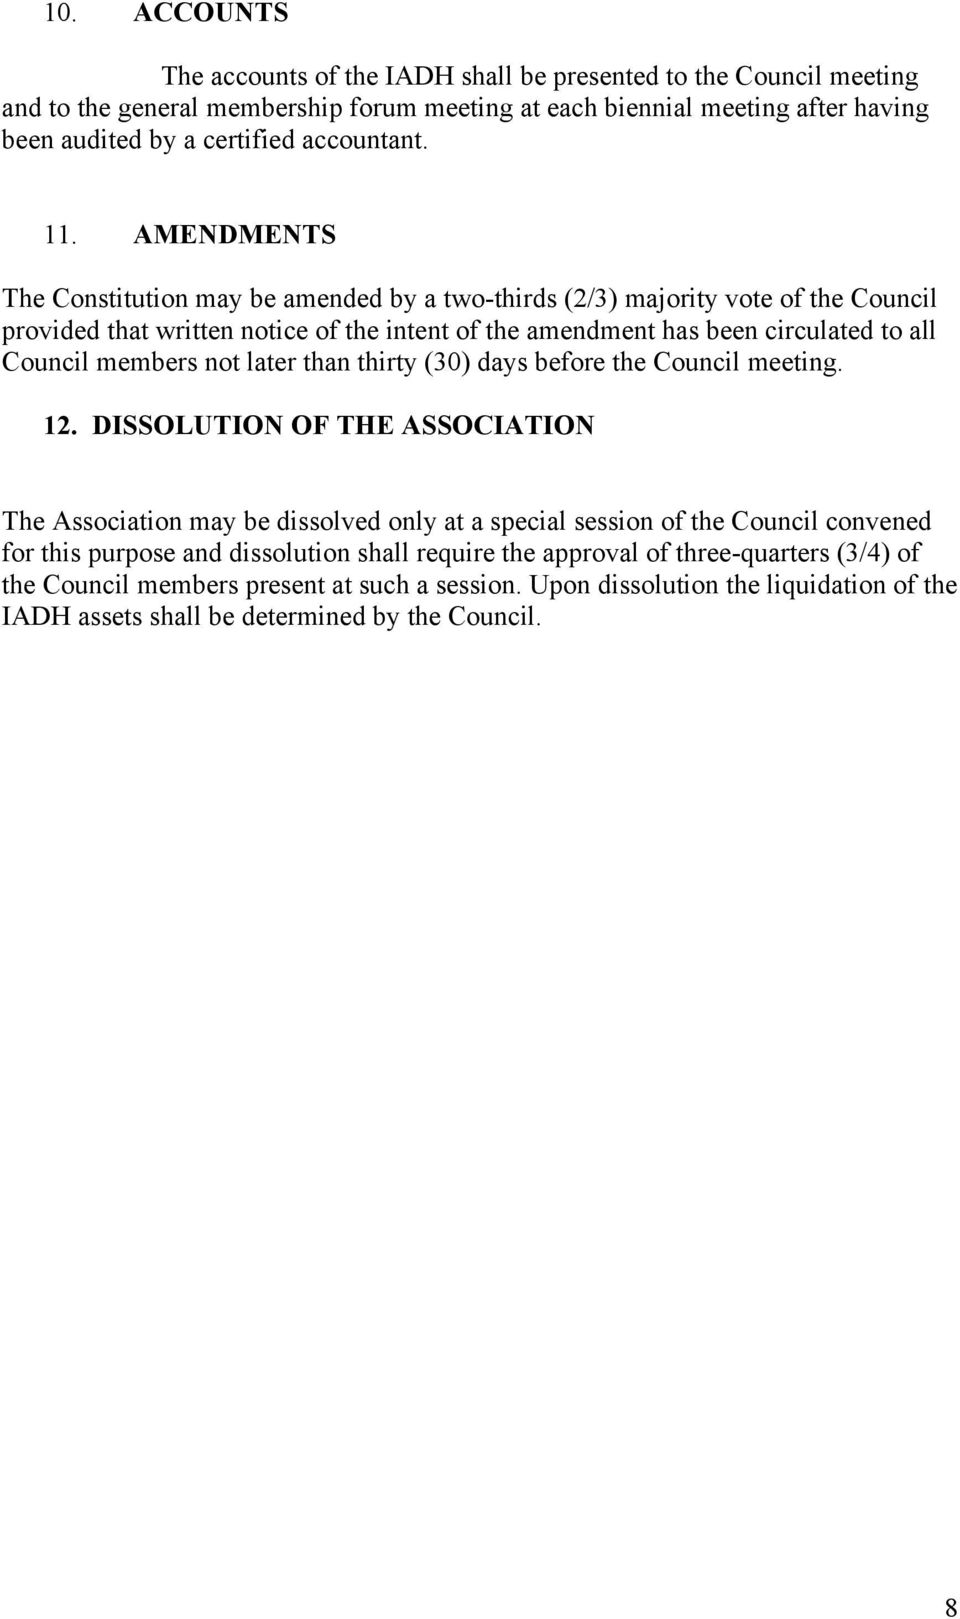 AMENDMENTS The Constitution may be amended by a two-thirds (2/3) majority vote of the Council provided that written notice of the intent of the amendment has been circulated to all Council members